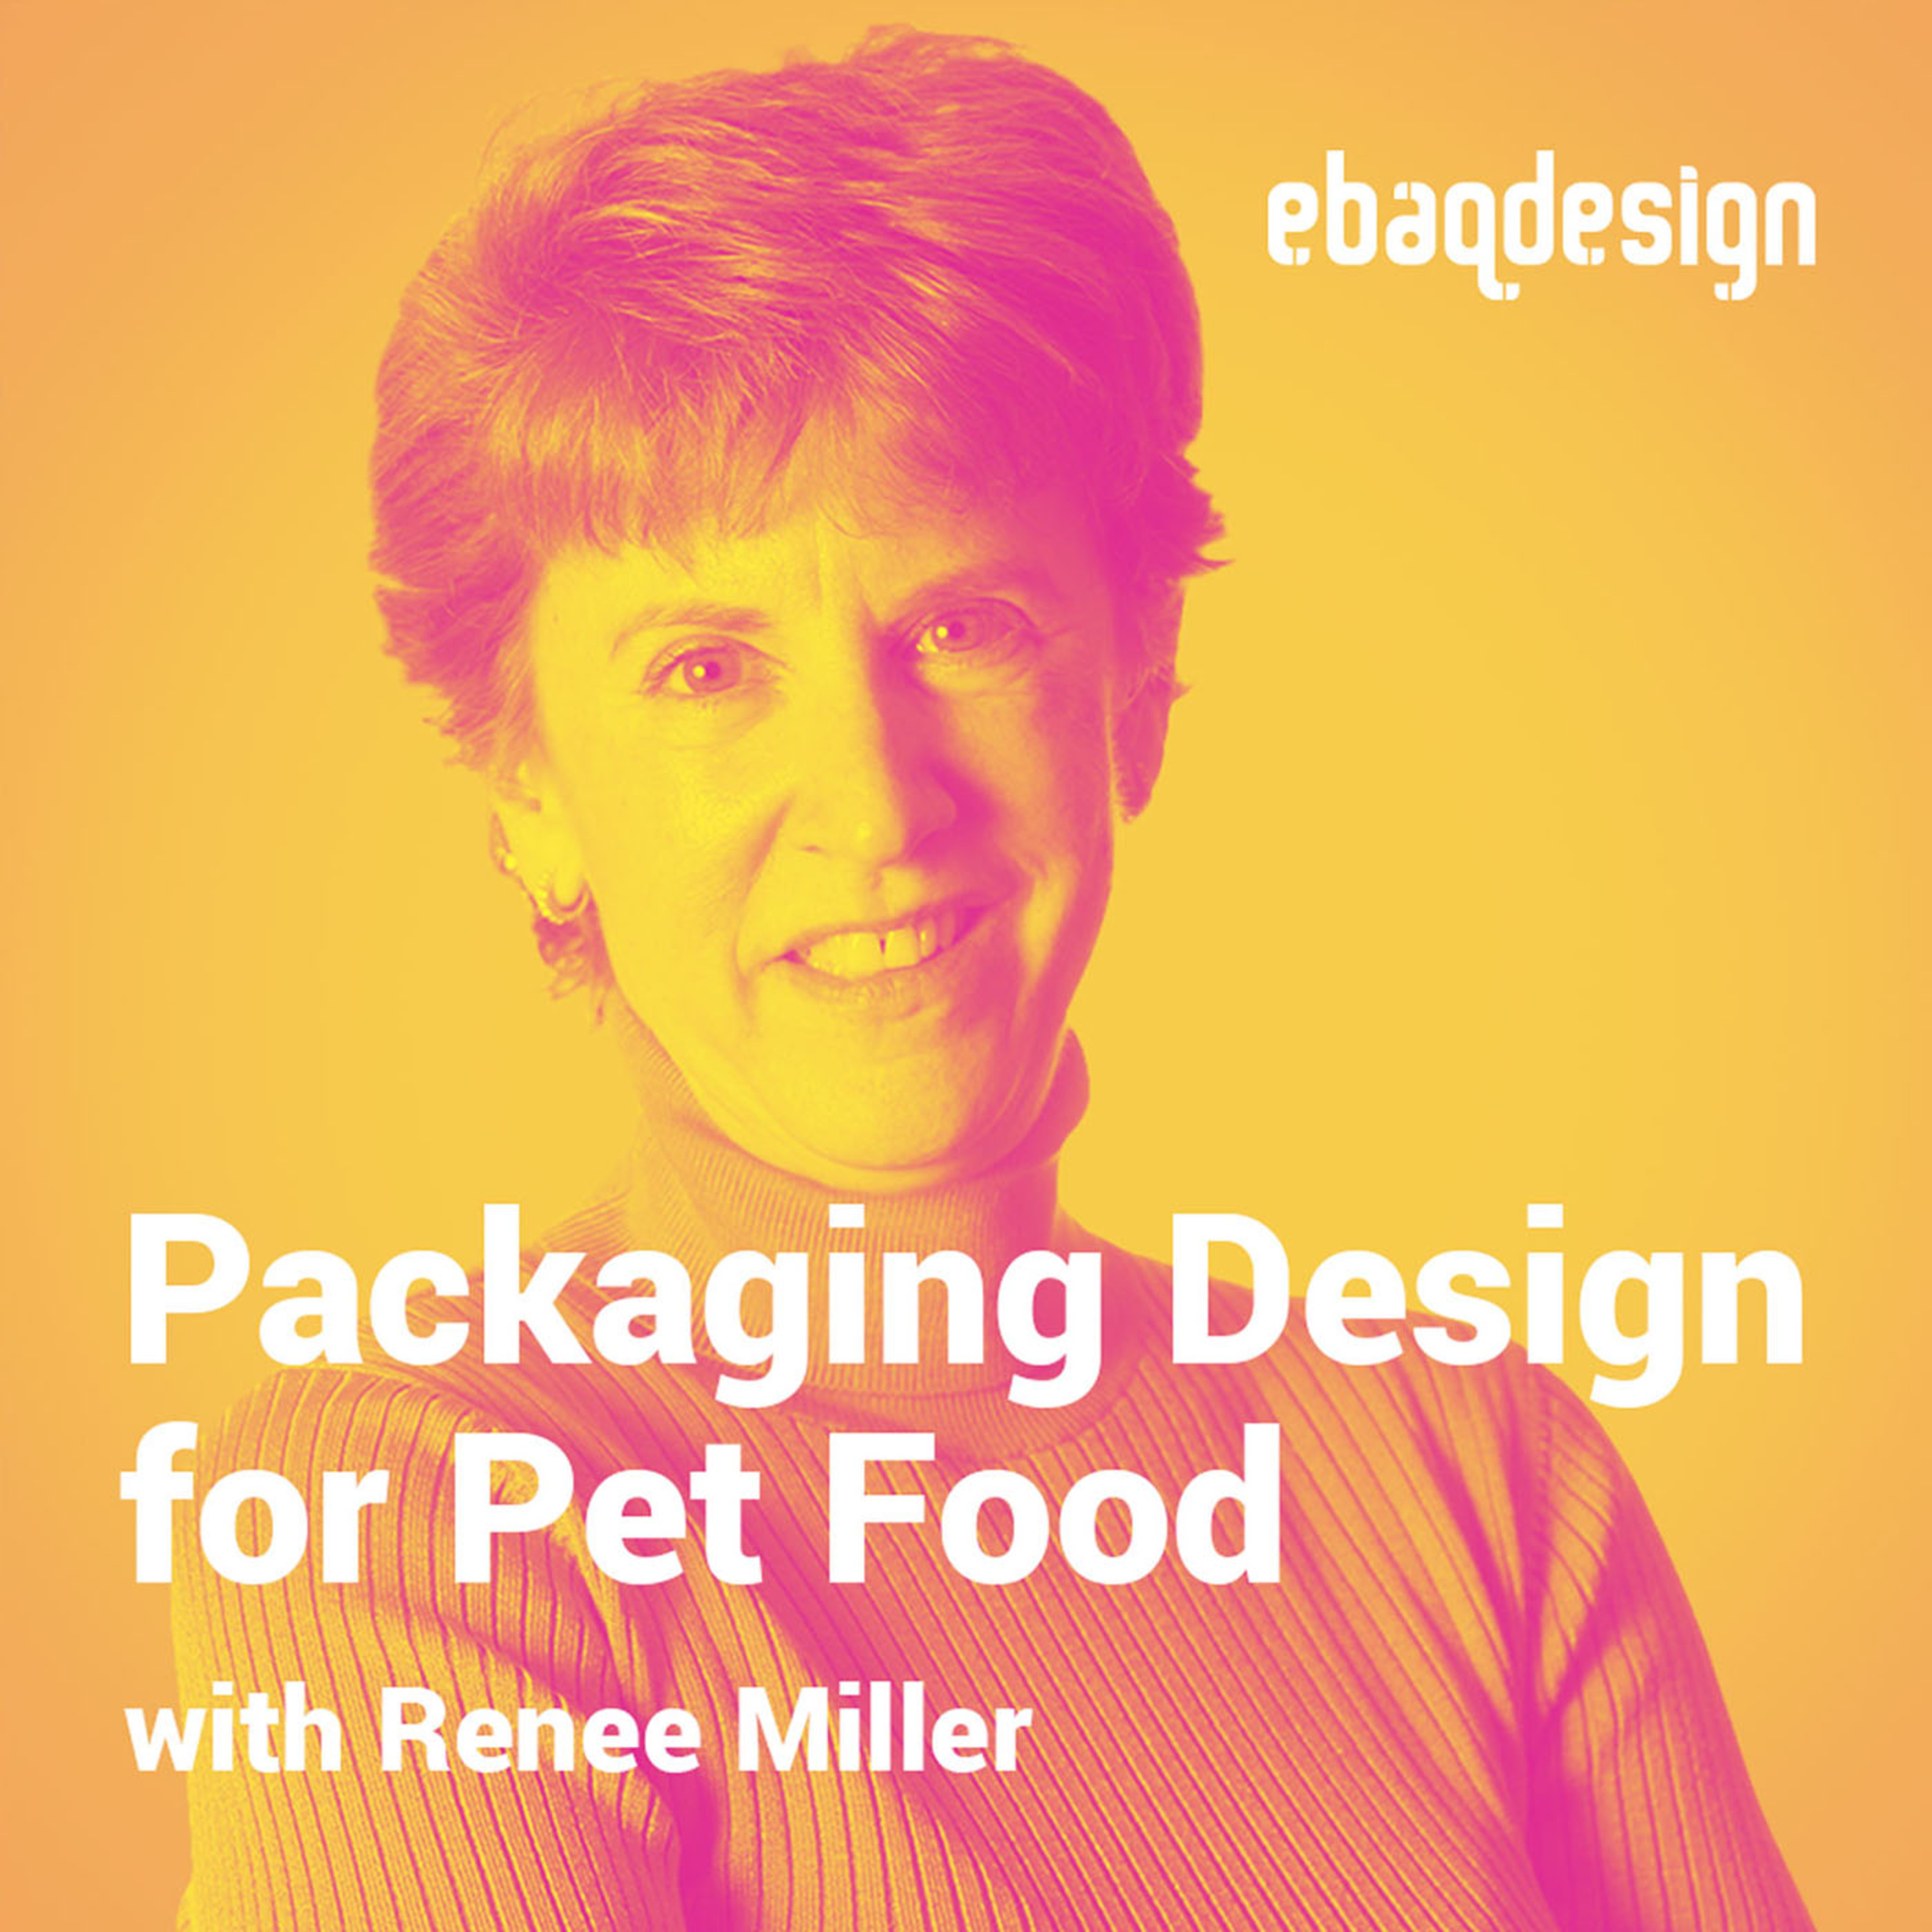 Packaging Design for Pet Food with Renee Miller